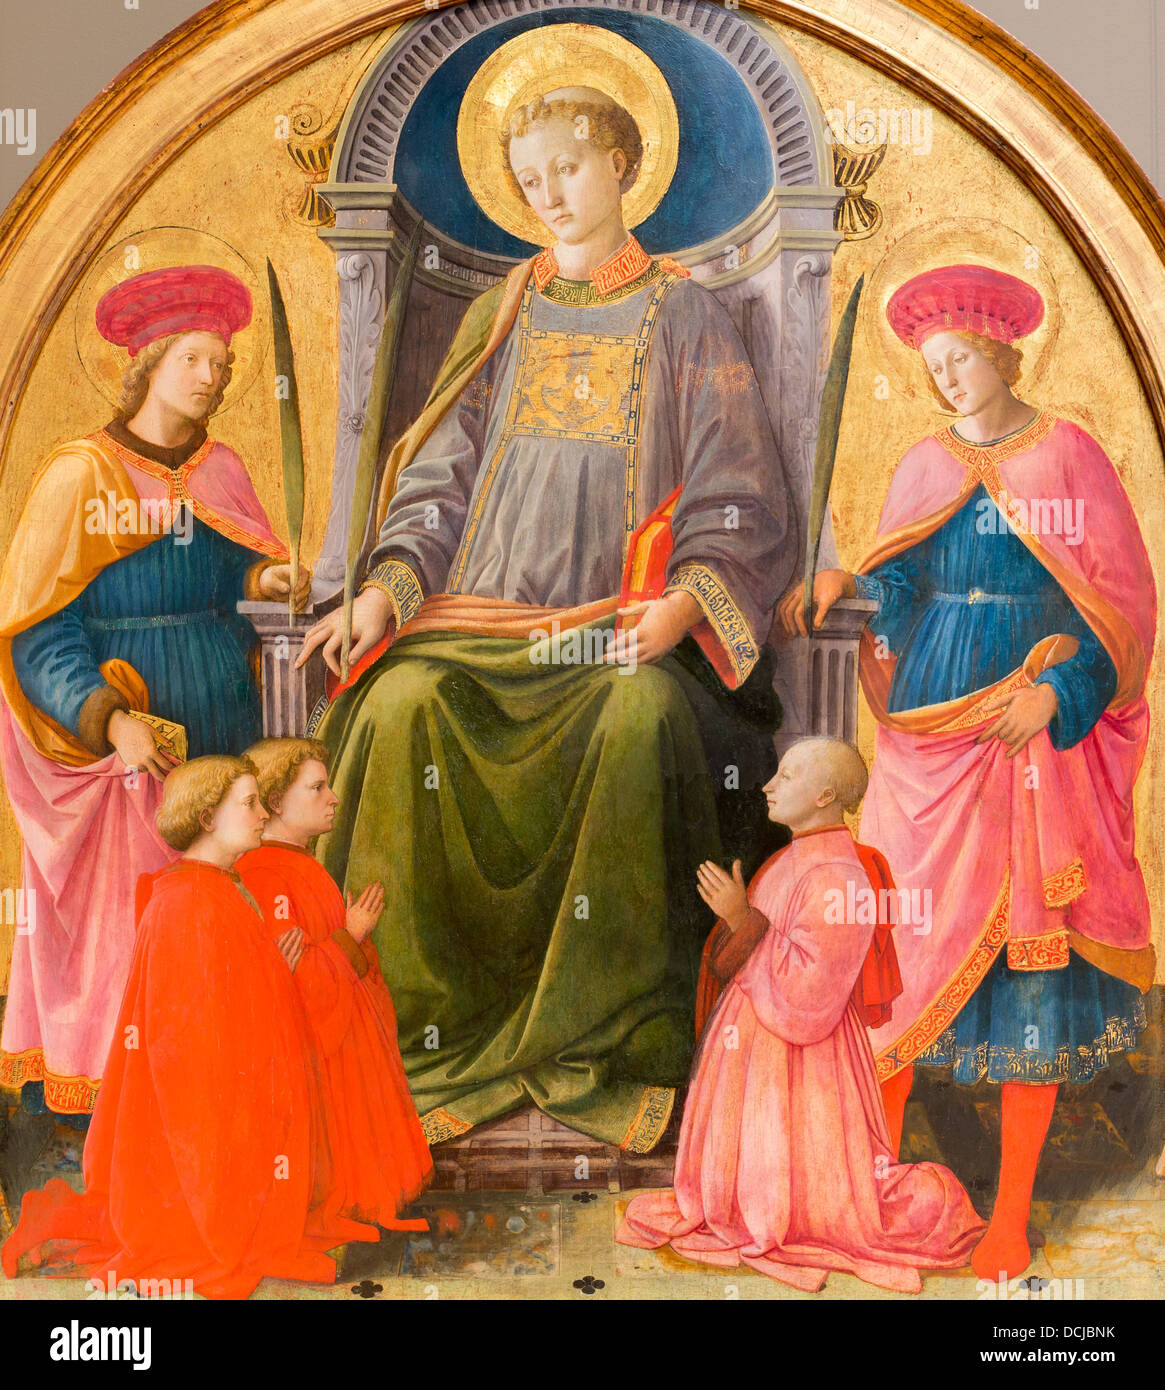 15th century  -  Saint Lawrence Enthroned with Saints and Donors, around 1440 - Fra Filippo Lippi Tempera on wood, - Stock Image